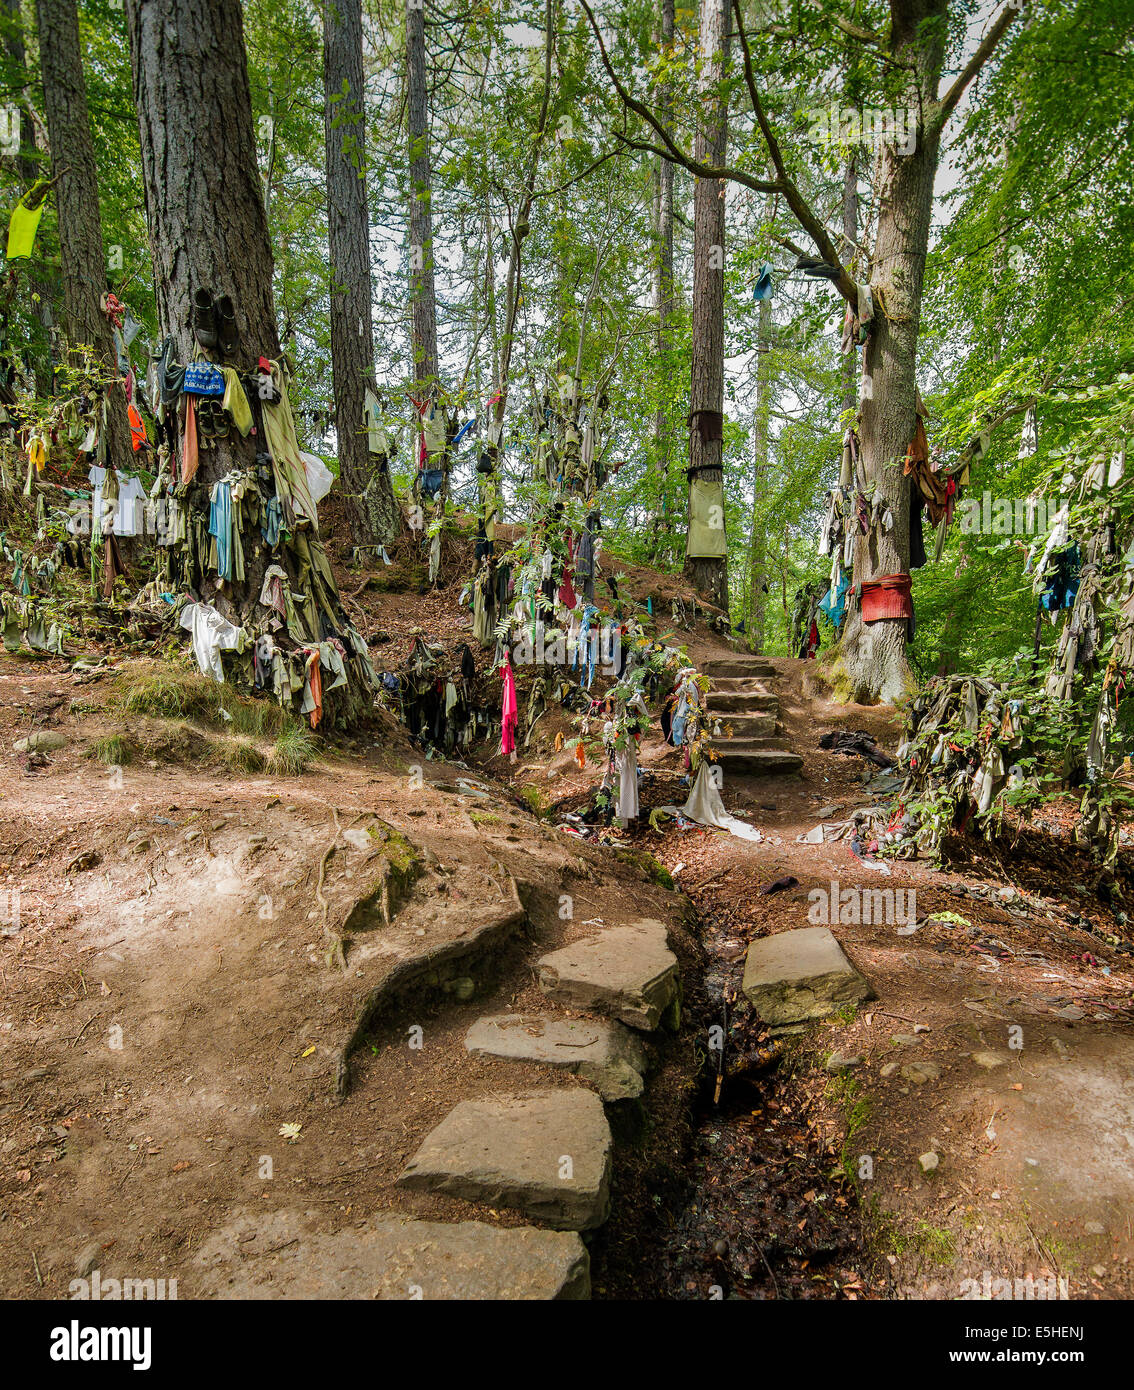 CLOOTIE WELL AT MUNLOCHY BLACK ISLE VARIETY OF CLOTHING TIED TO TREES BY PEOPLE IN THE HOPE OF HAVING AN ILLNESS - Stock Image